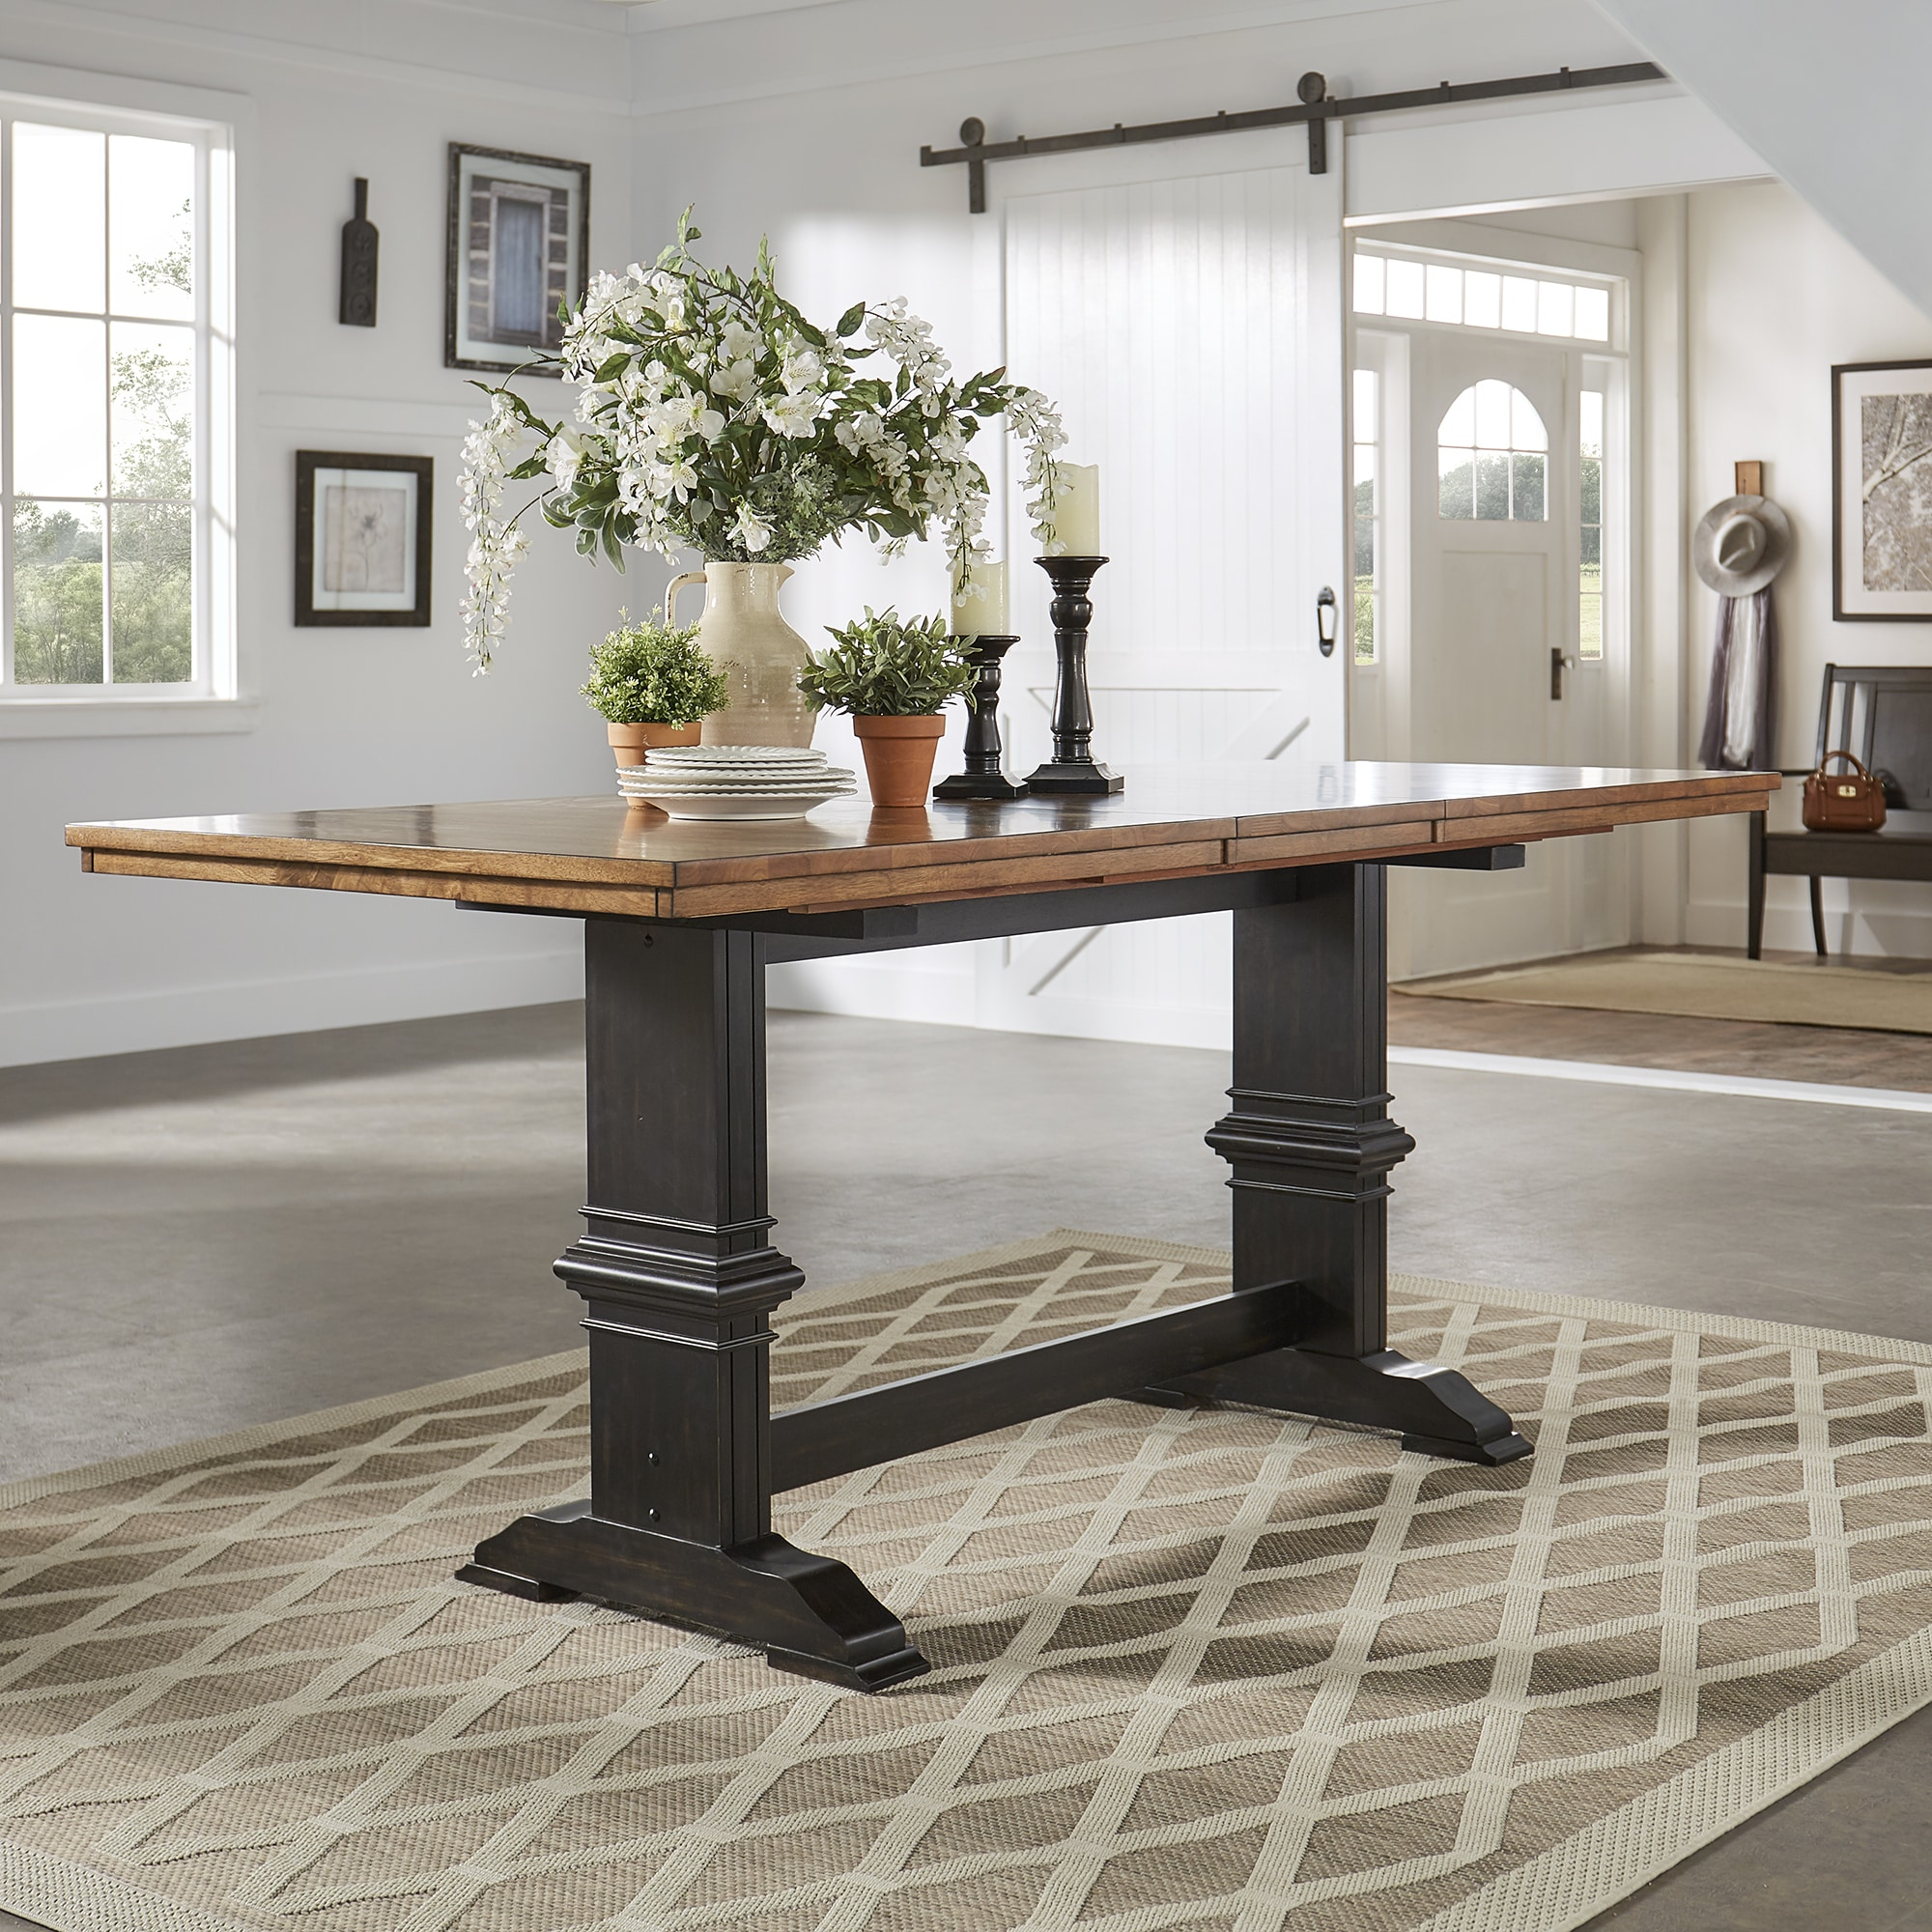 unique height art rustic dining gathering tables counter designs room mariposa including a sets table america